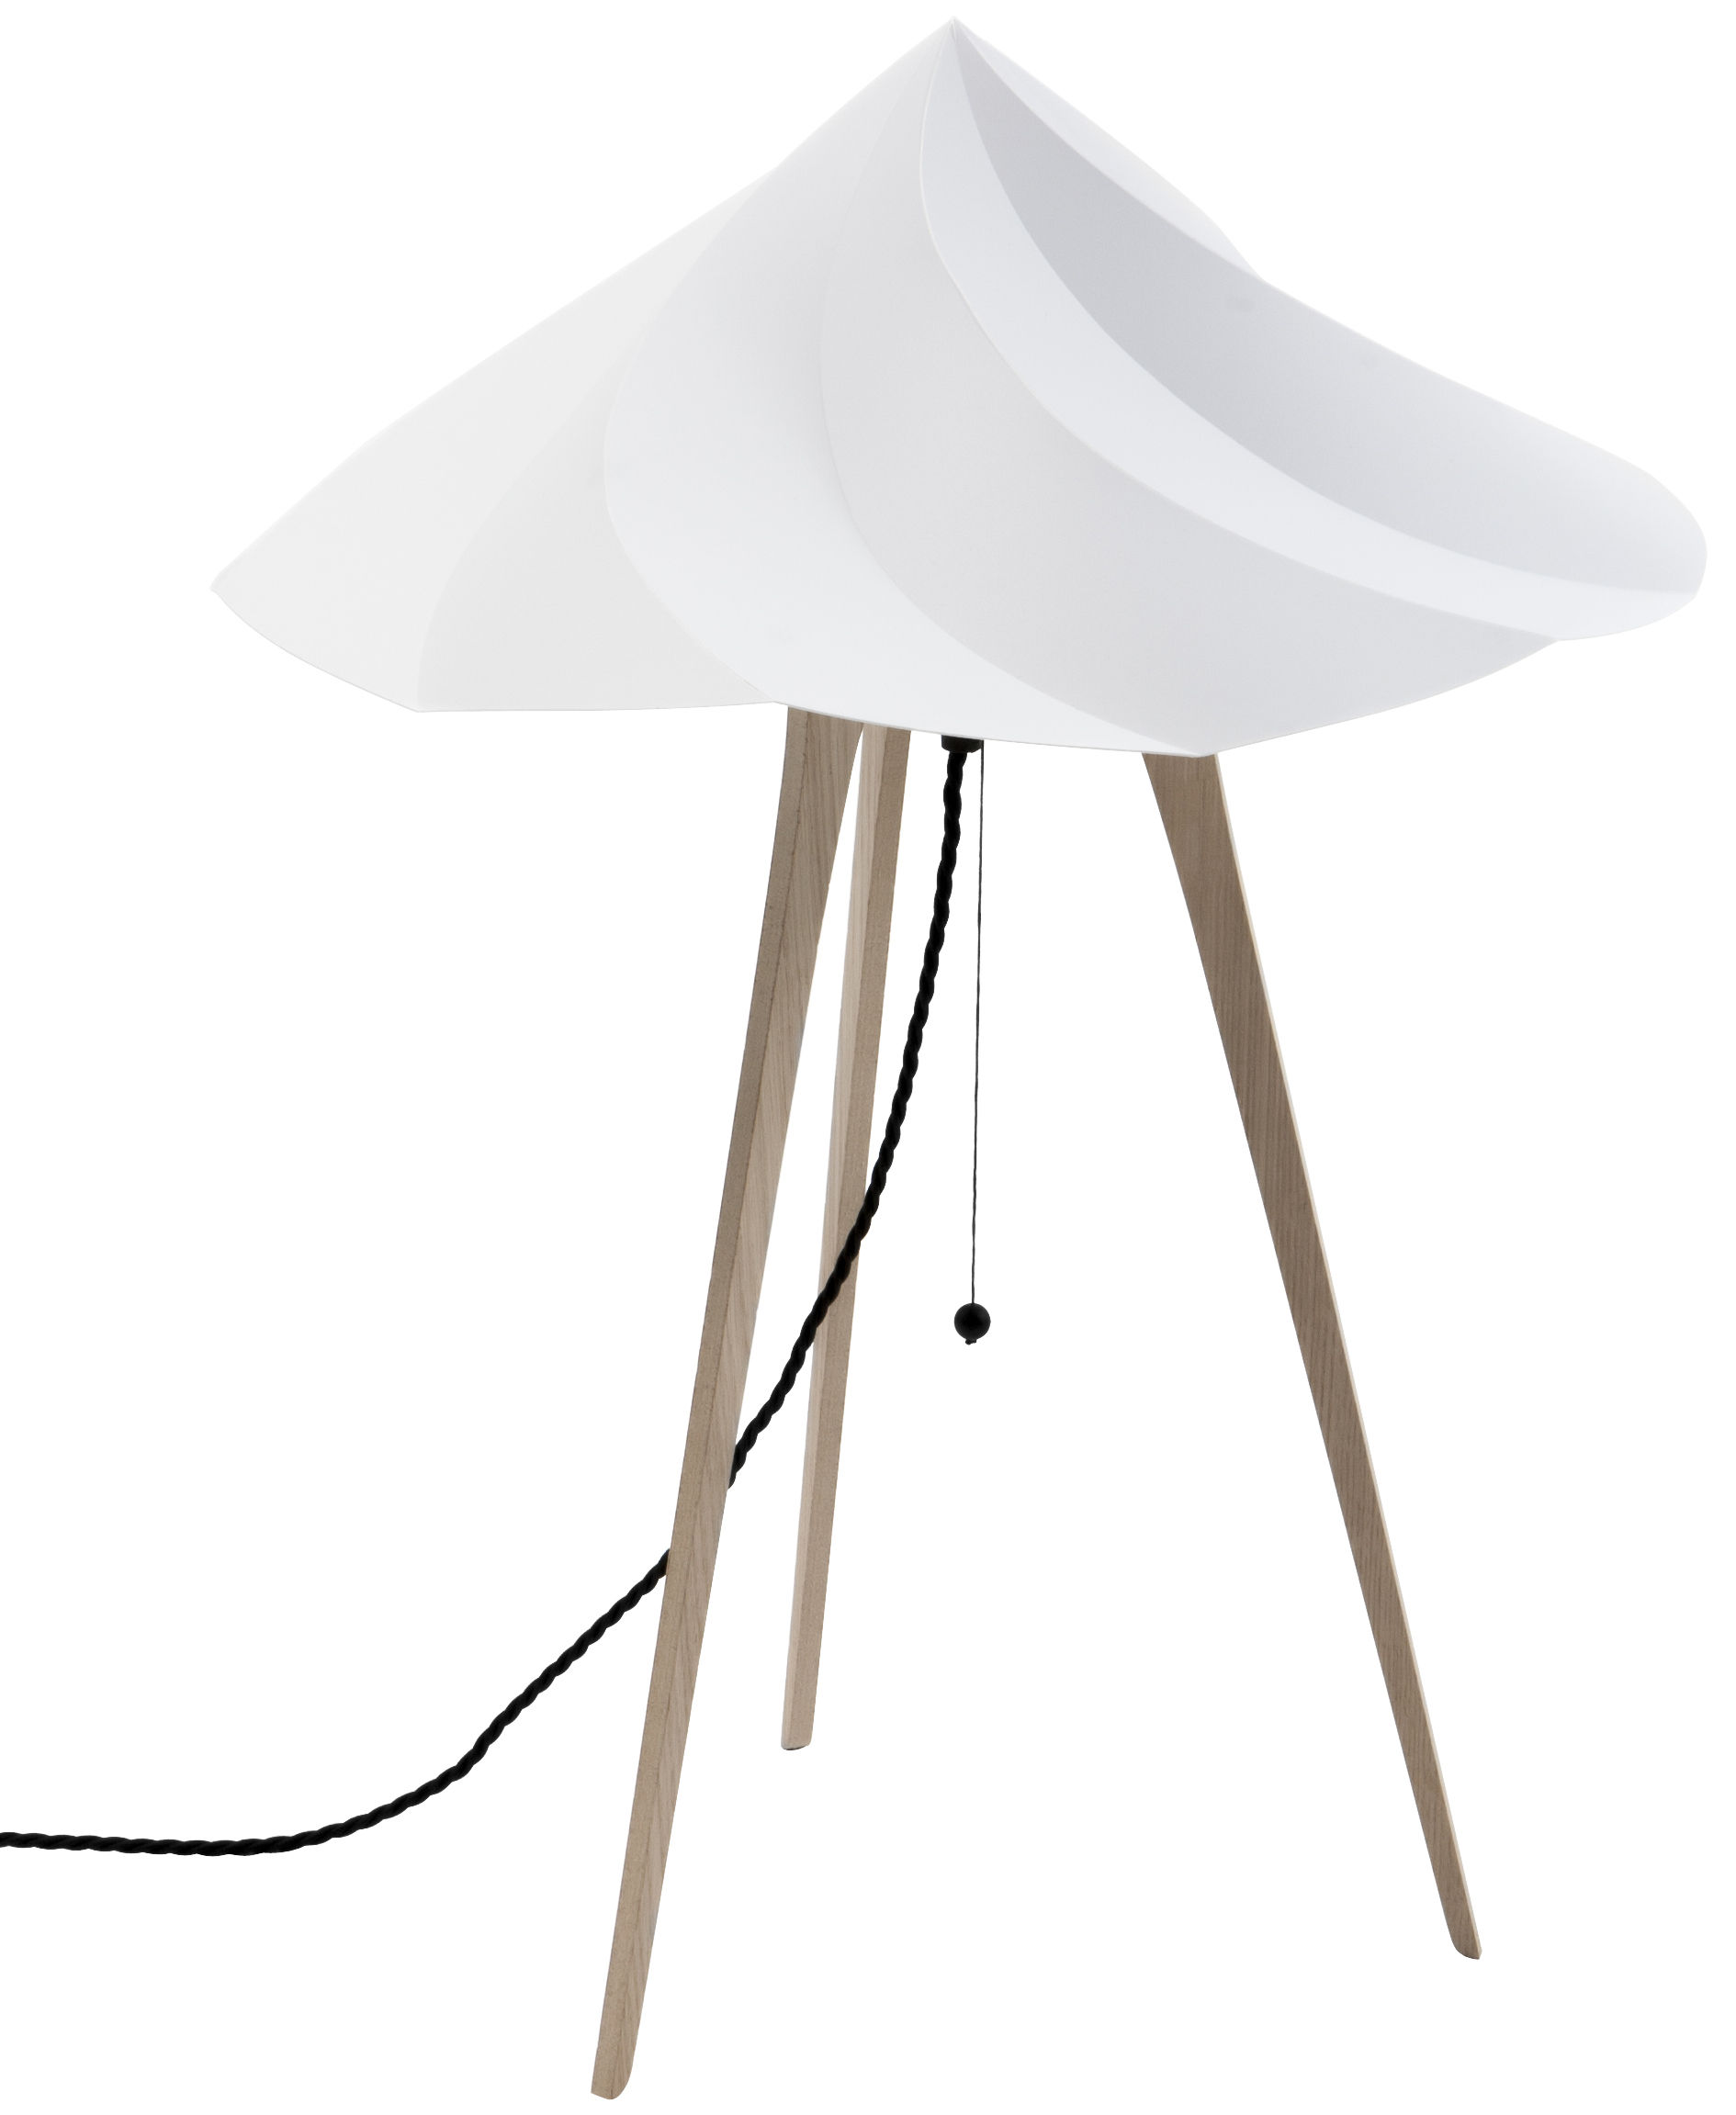 Lighting - Table Lamps - Chantilly Large Lamp by Moustache - Grey - Oak plywood, Recycled polypropylene